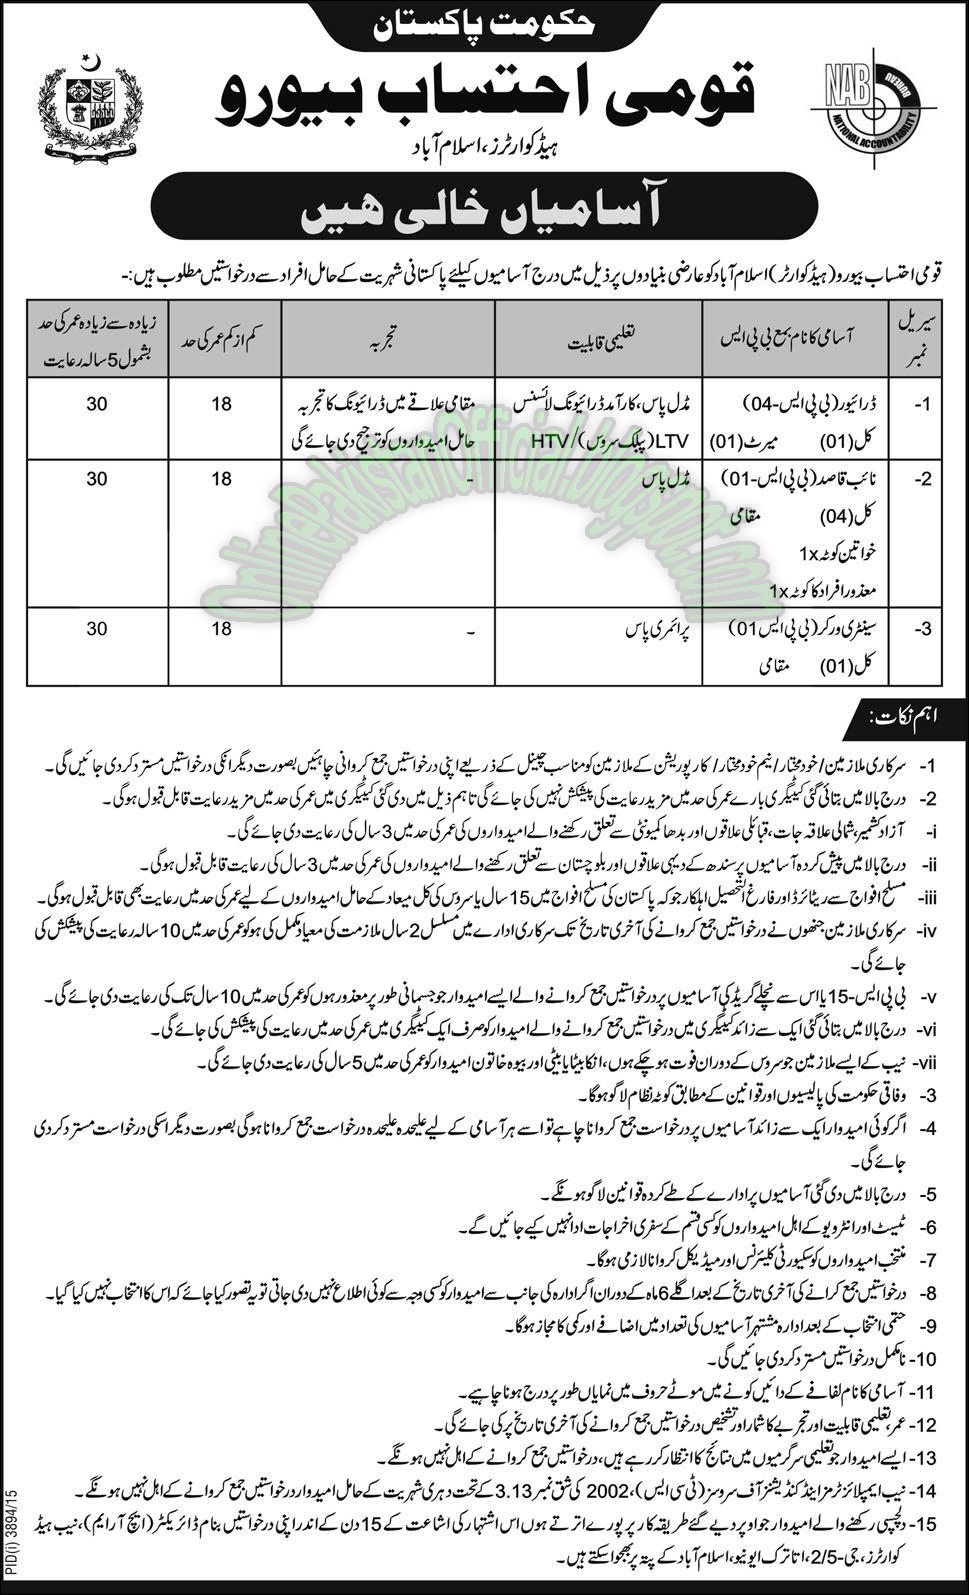 National Accountability Bureau, Islamabad latest 2016 jobs